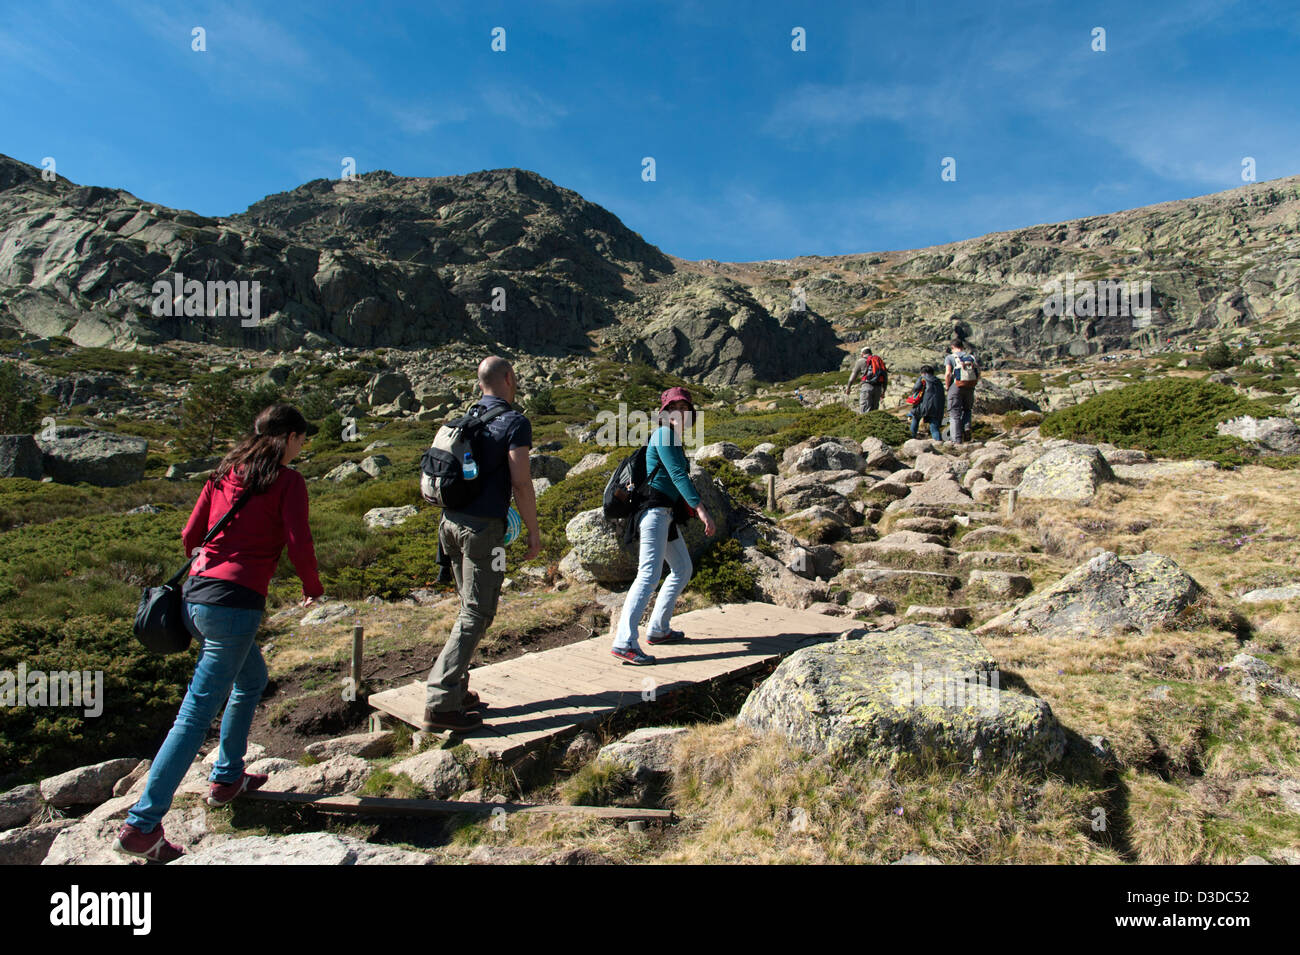 Young people hiking in the Penalara Nature Reserve on the Sierra de Guadarrama, Madrid, Spain Stock Photo